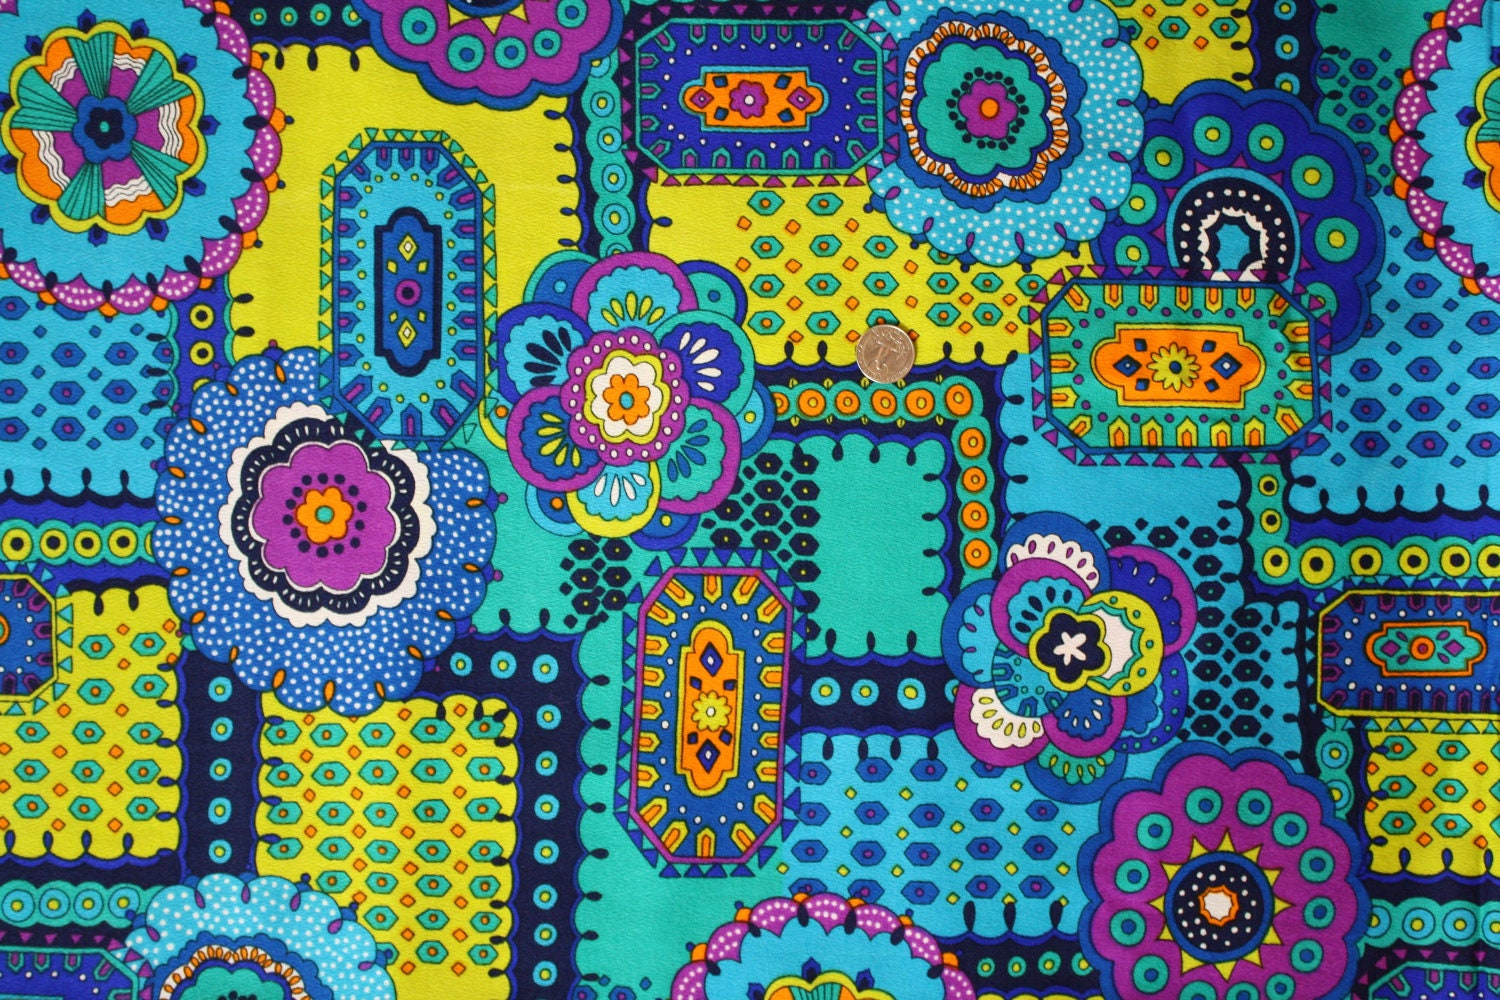 Vintage 1970s Psychedelic Groovy Hippie Fabric Sewing